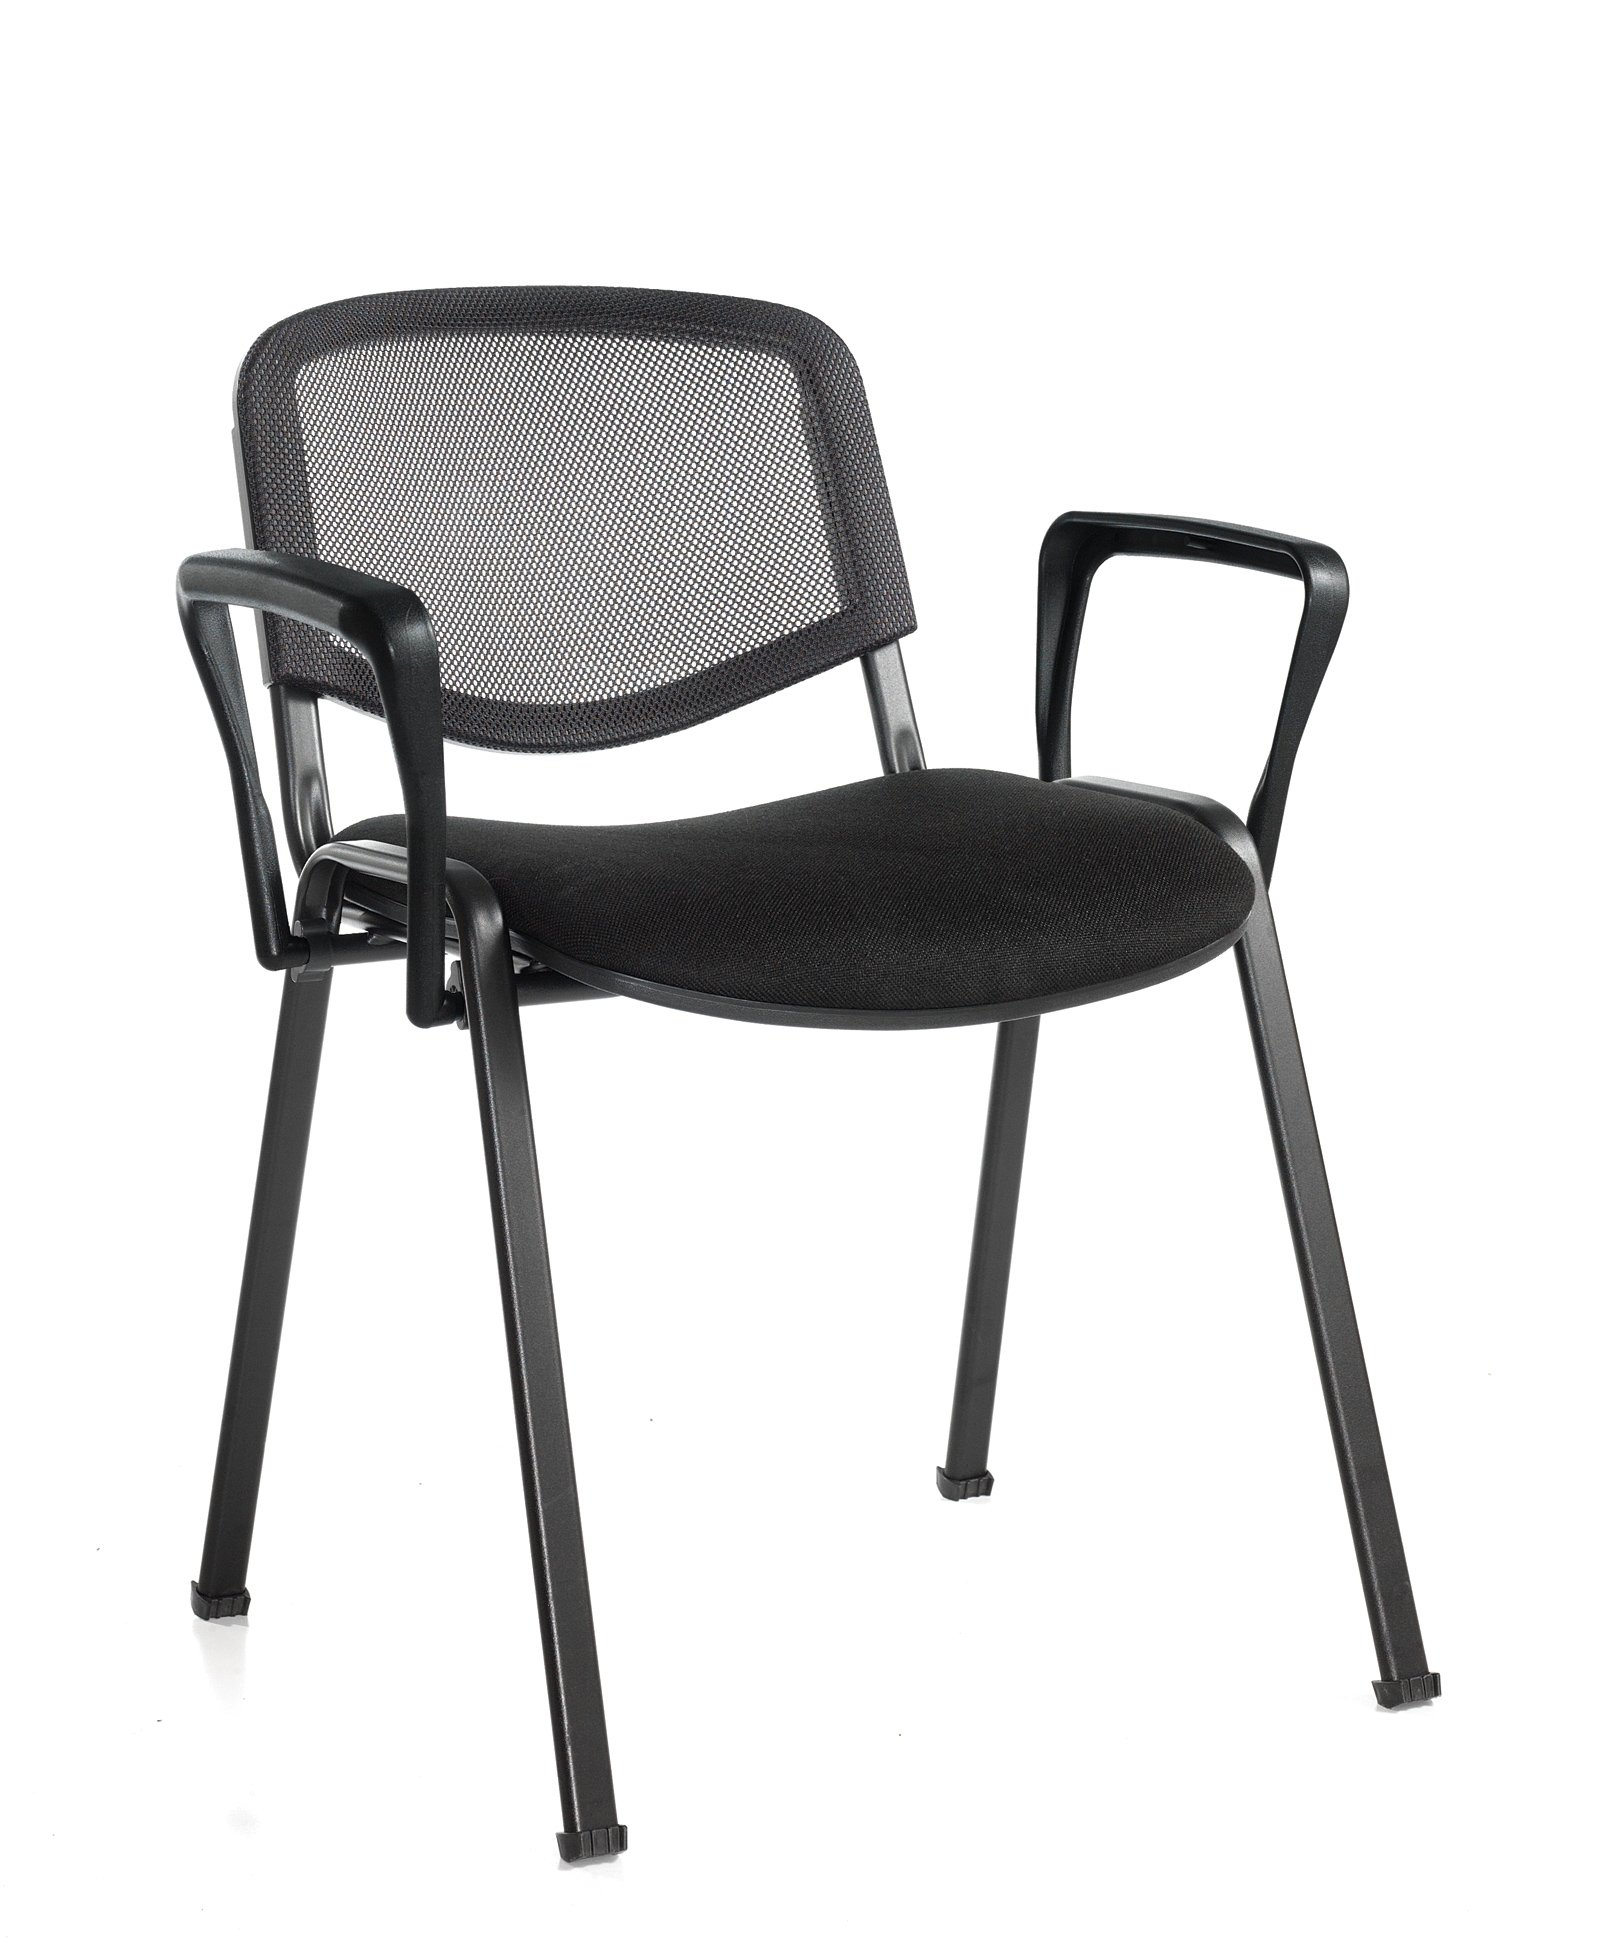 stackable chairs with arms target toddler potty taurus mesh stacking chair price per box of 4